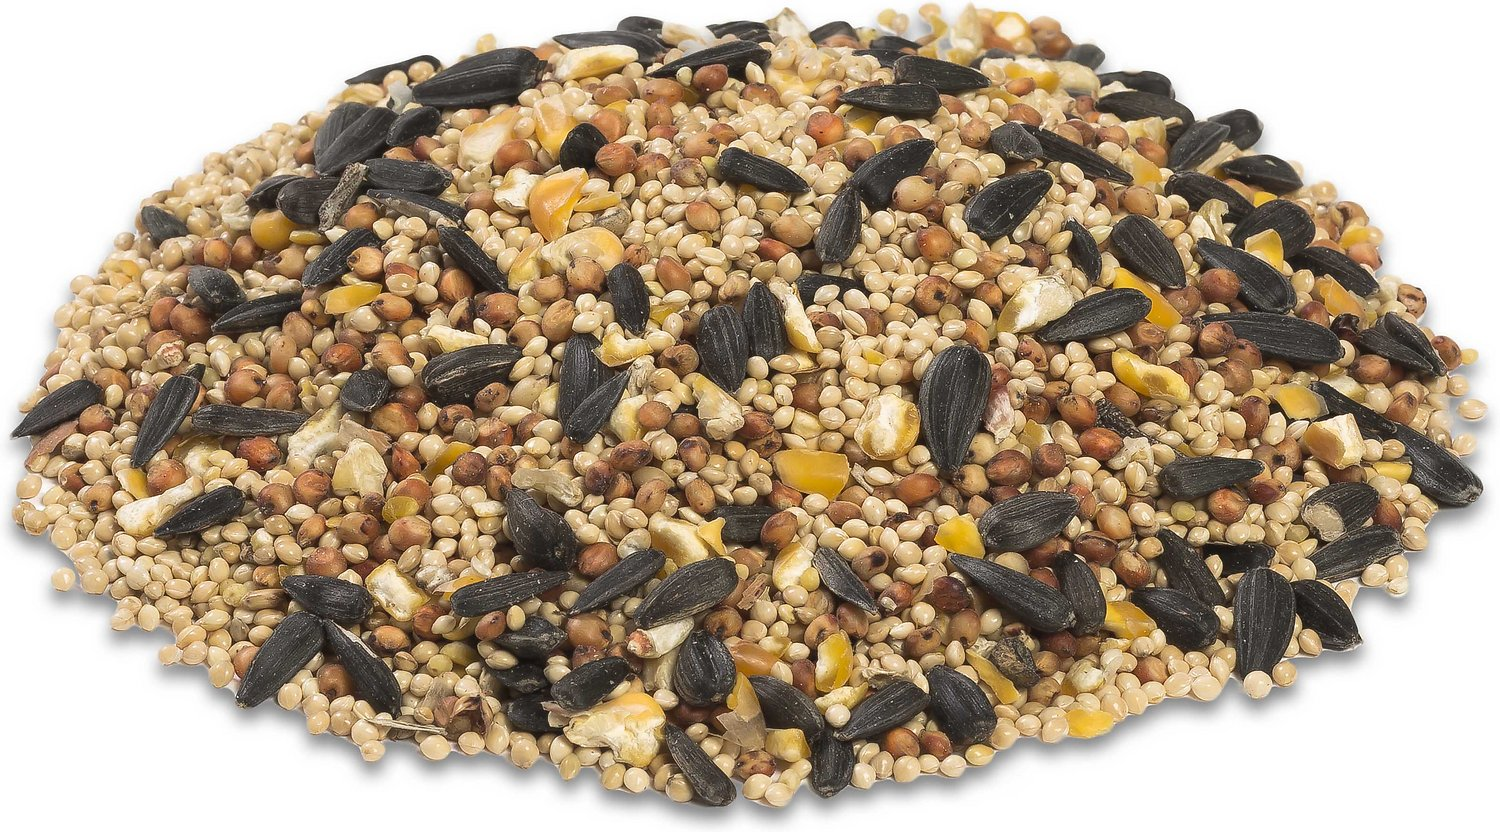 Audubon Park Wild Bird Food, 20-lb bag - Chewy.com